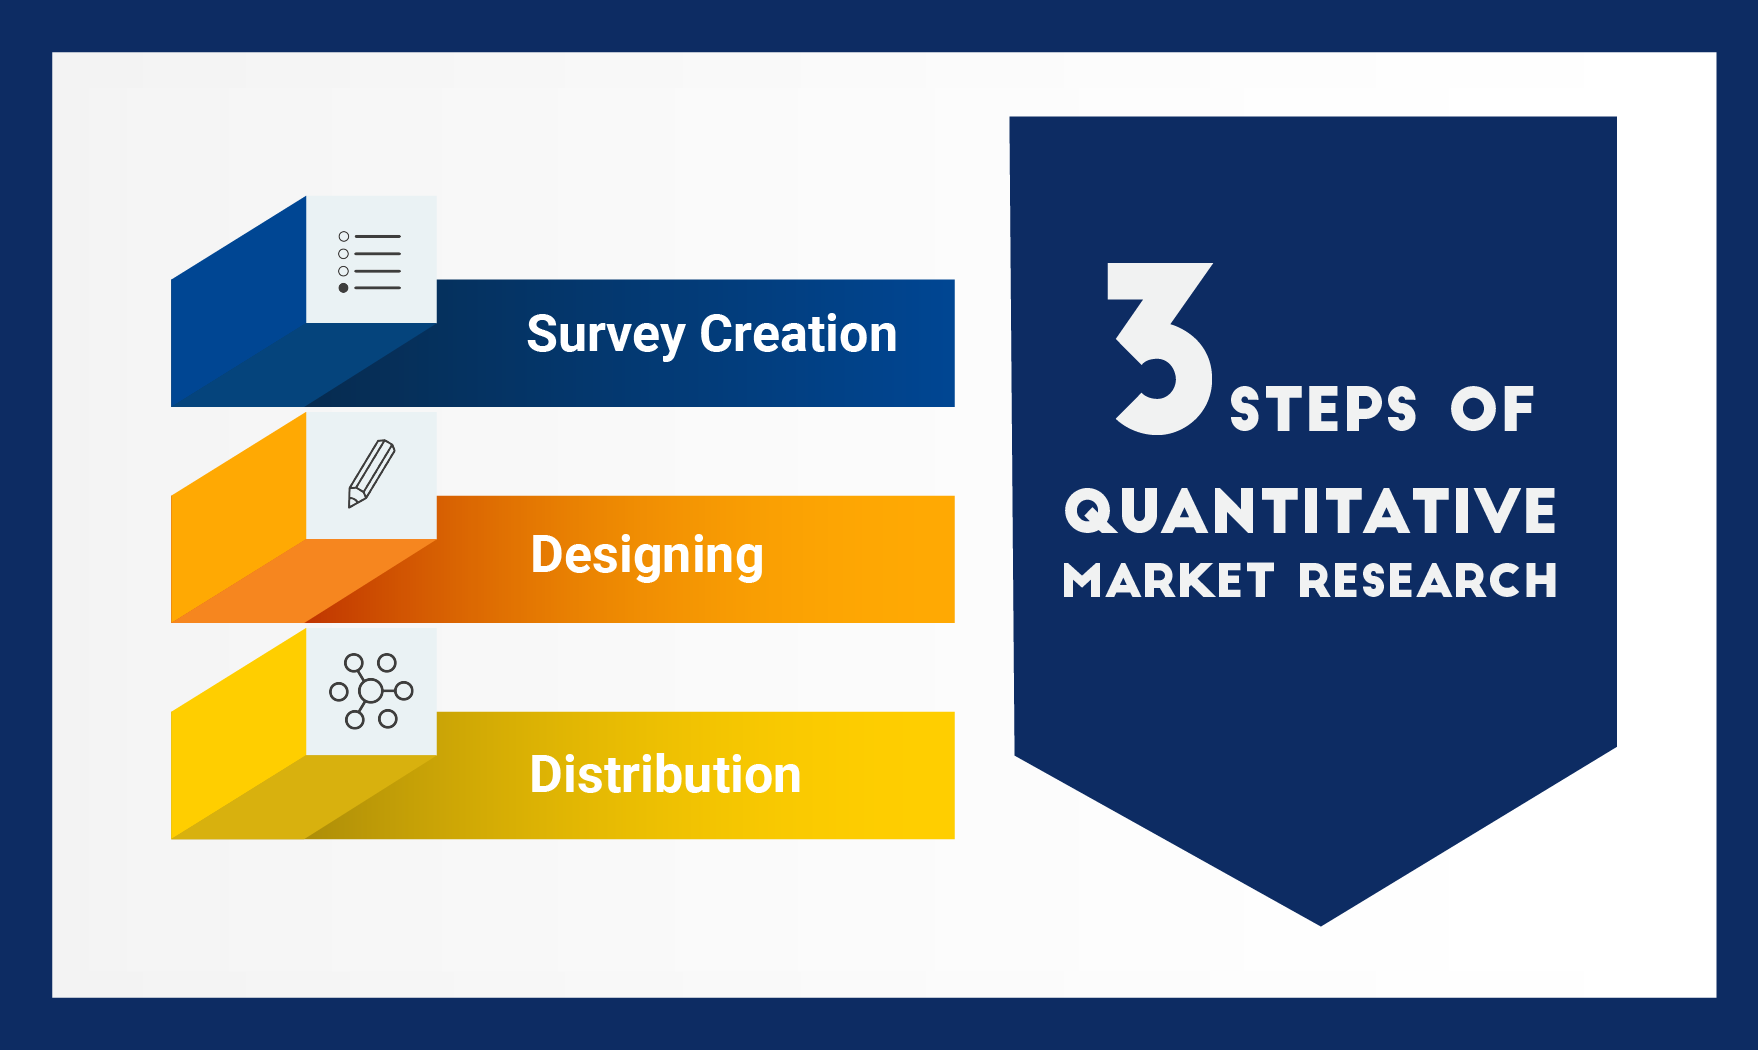 3 steps of quantitative market research